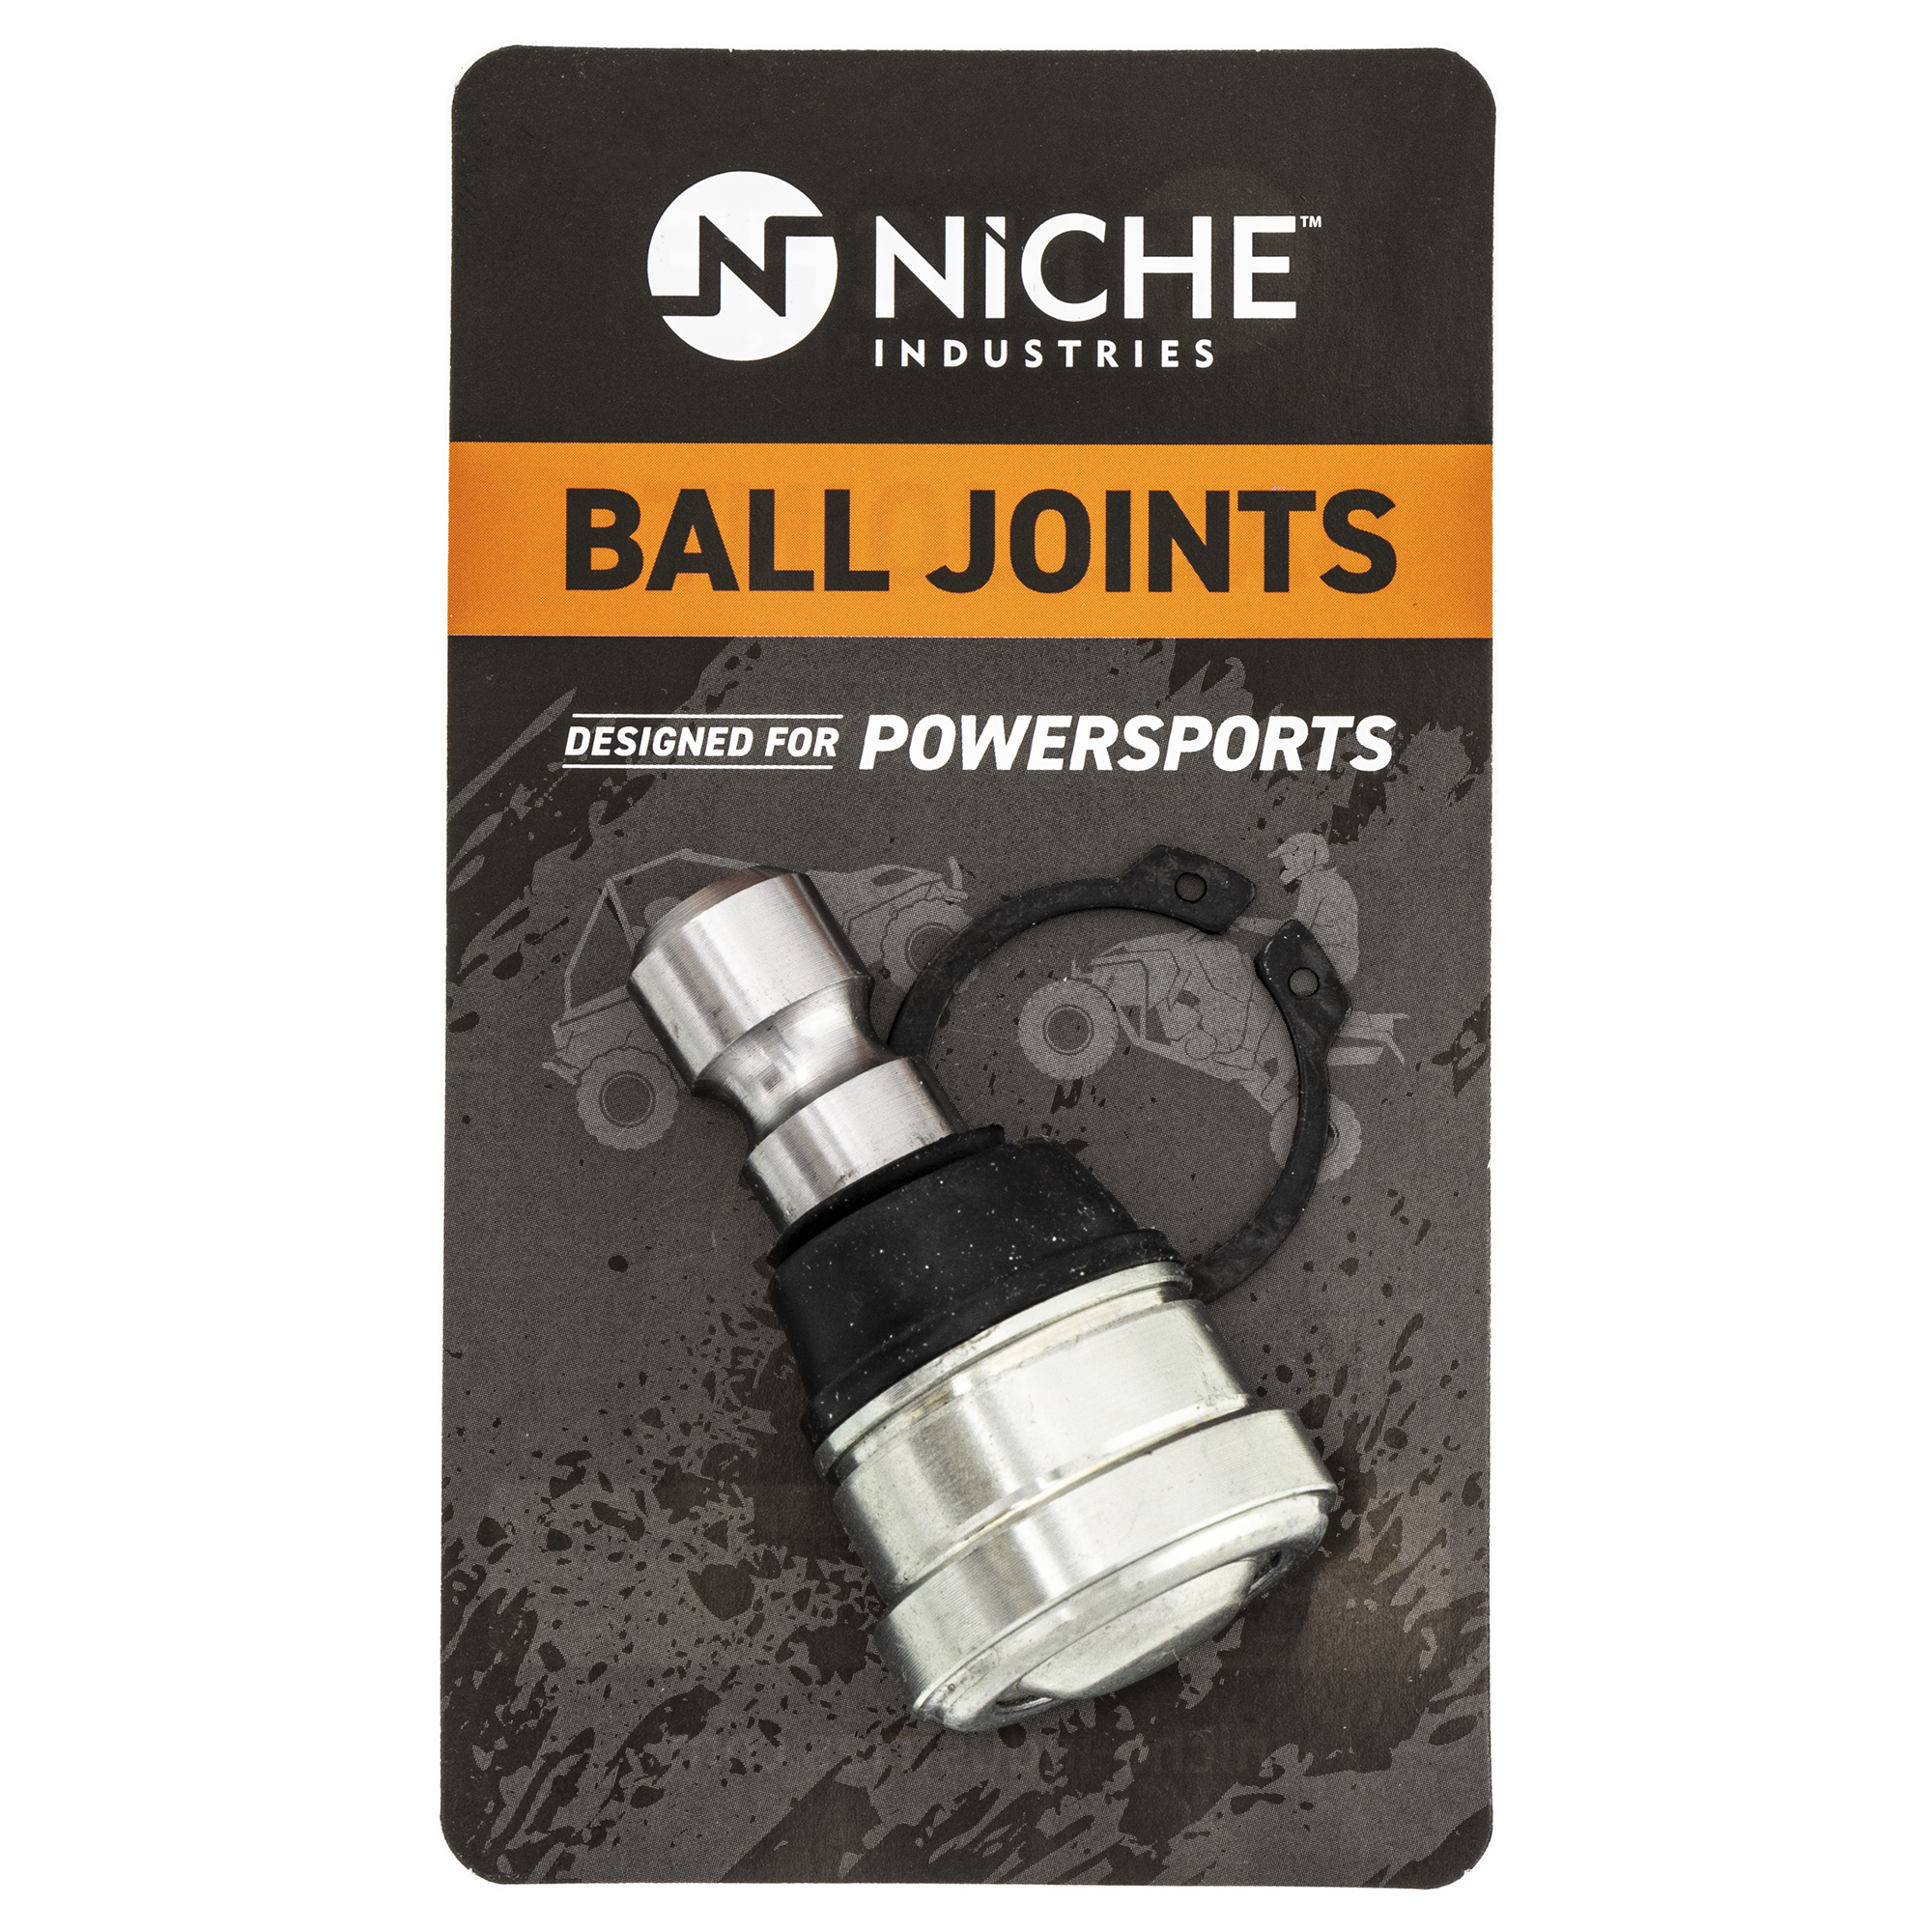 2 UPPER OR LOWER BALL JOINT for POLARIS SPORTSMAN FOREST 850 2011-2014